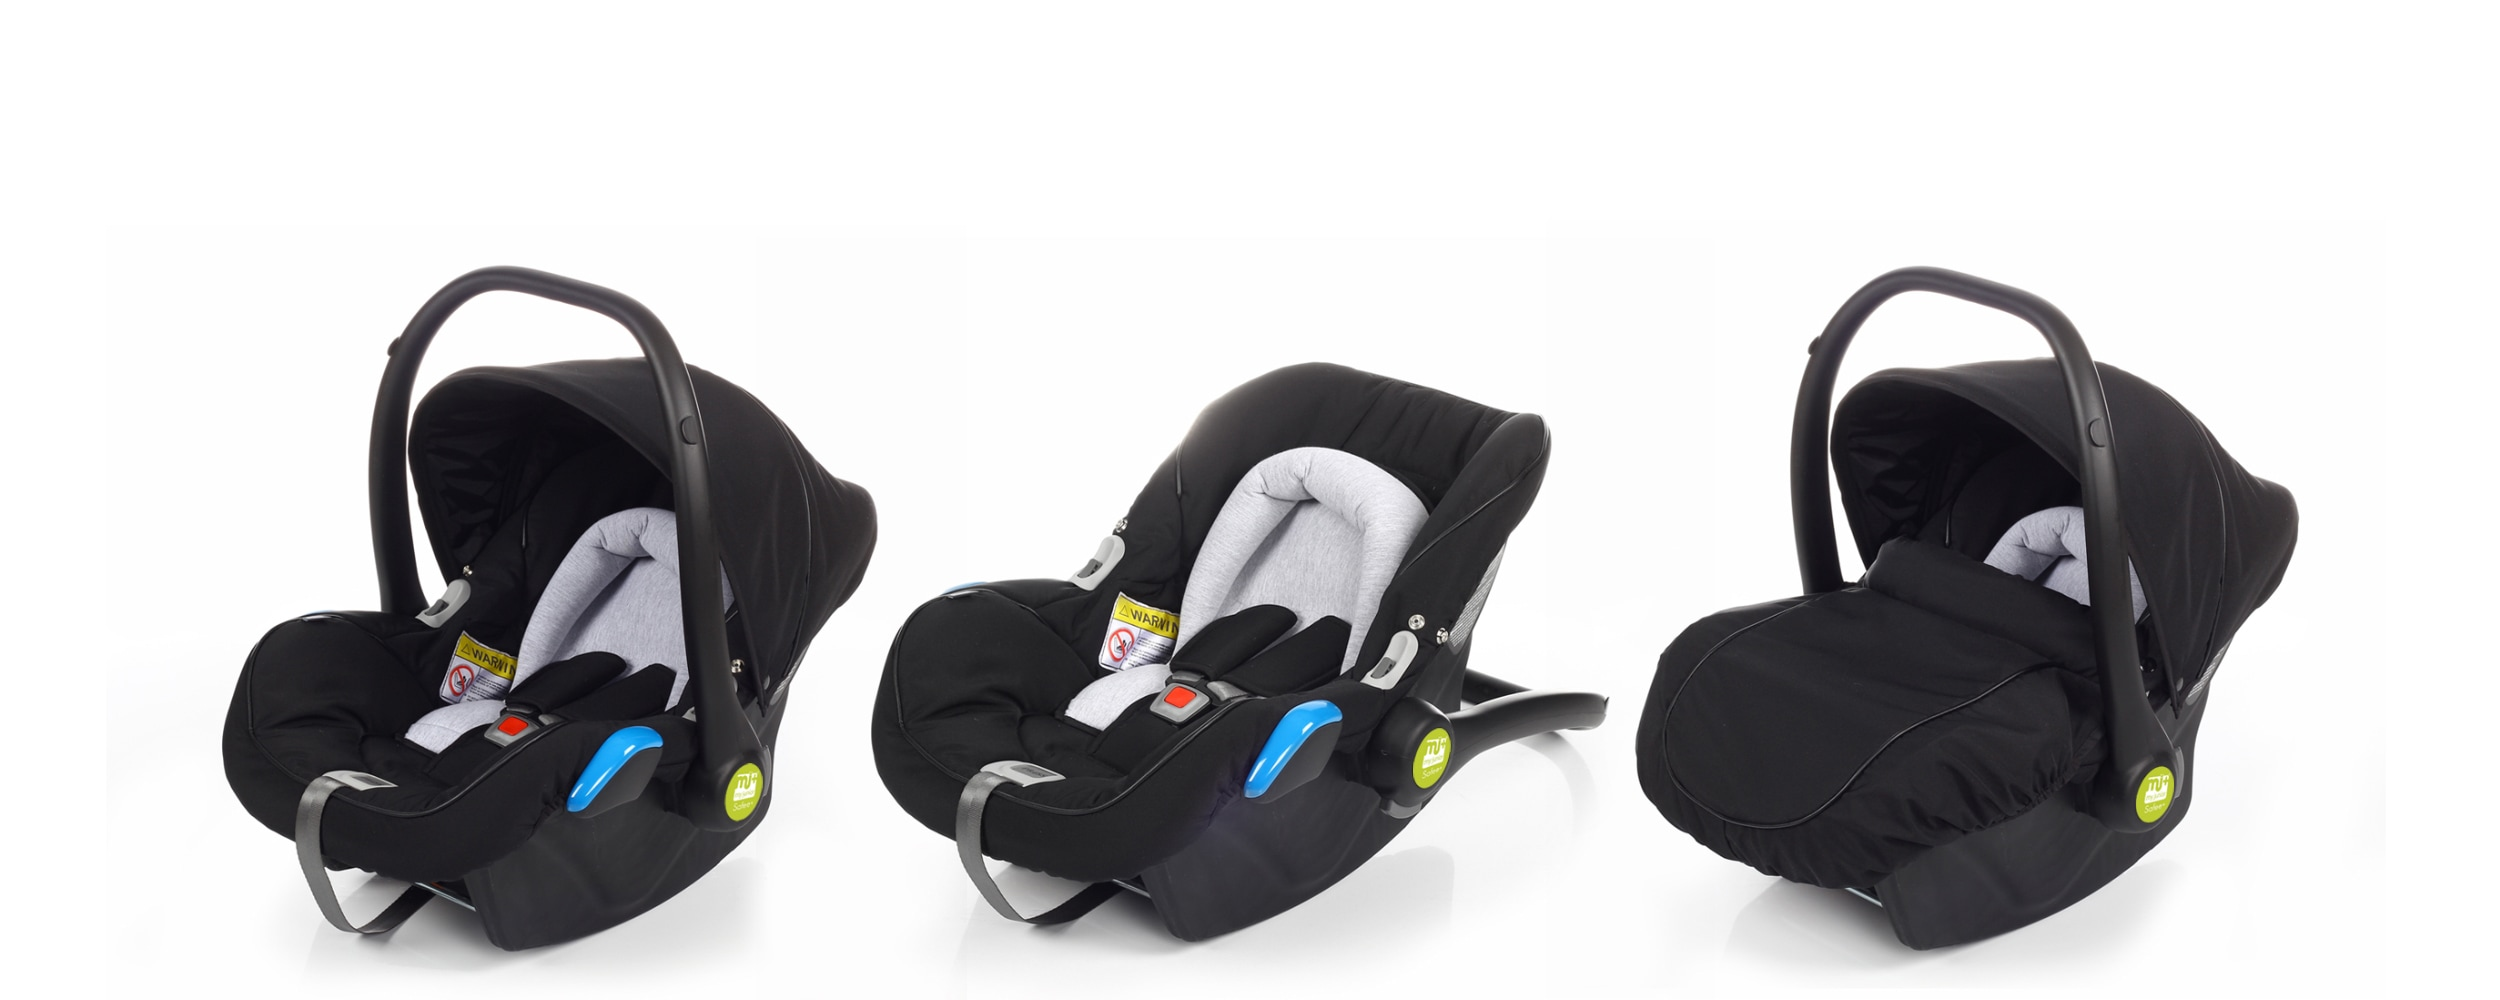 My Junior Kinderwagen Babyschale Ausstattung